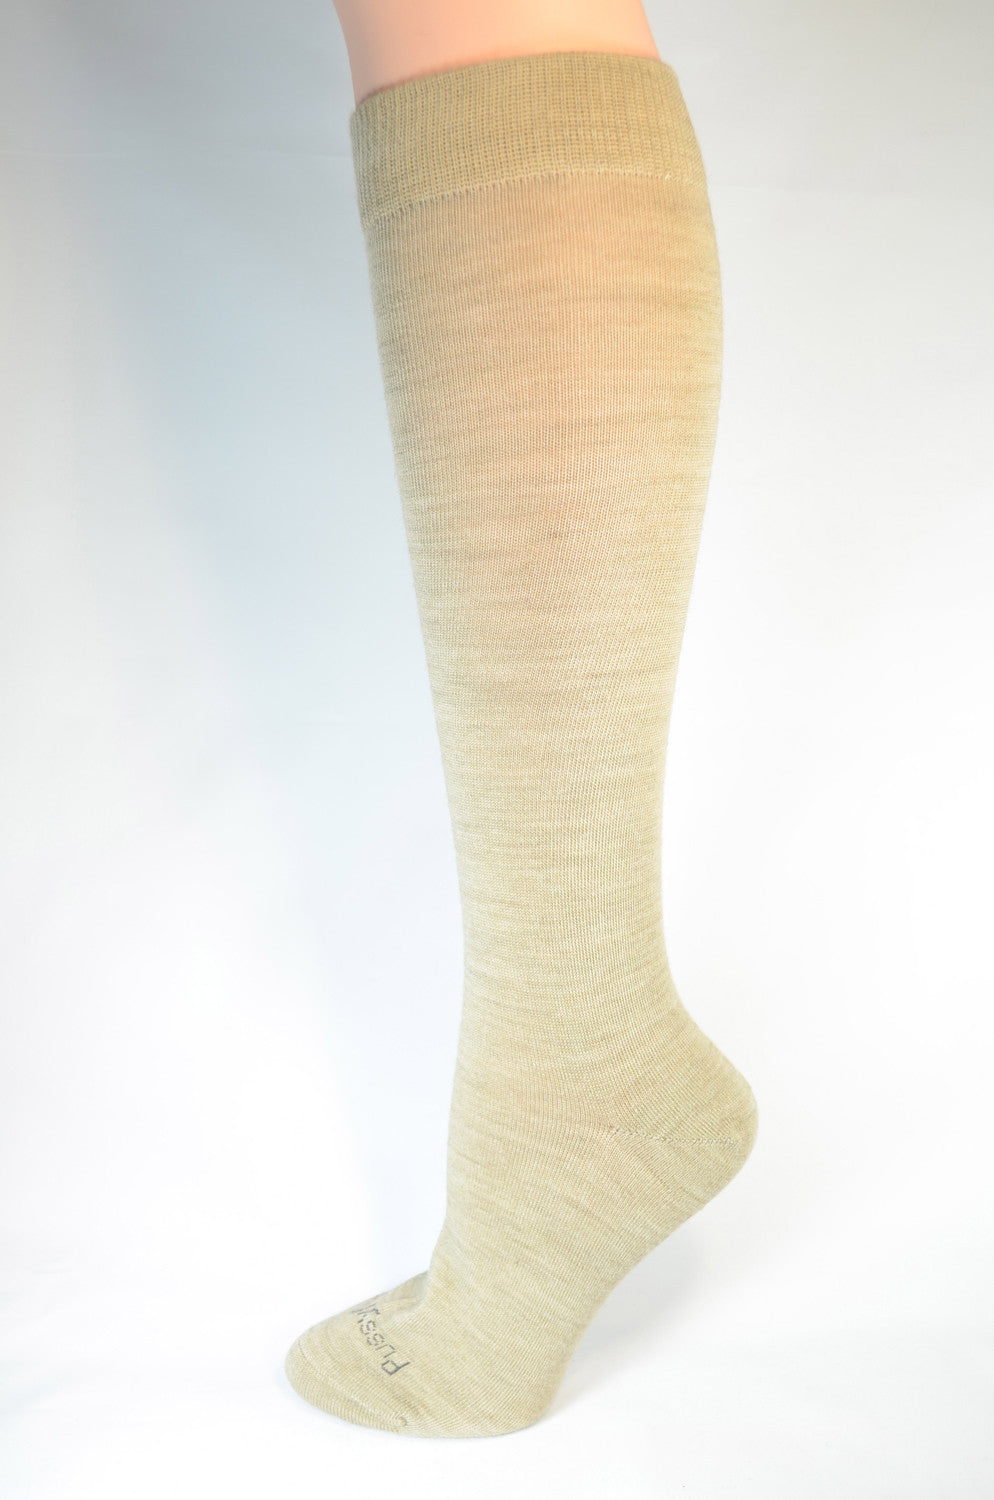 Pussyfoot Women's Merino Knee High - Beige